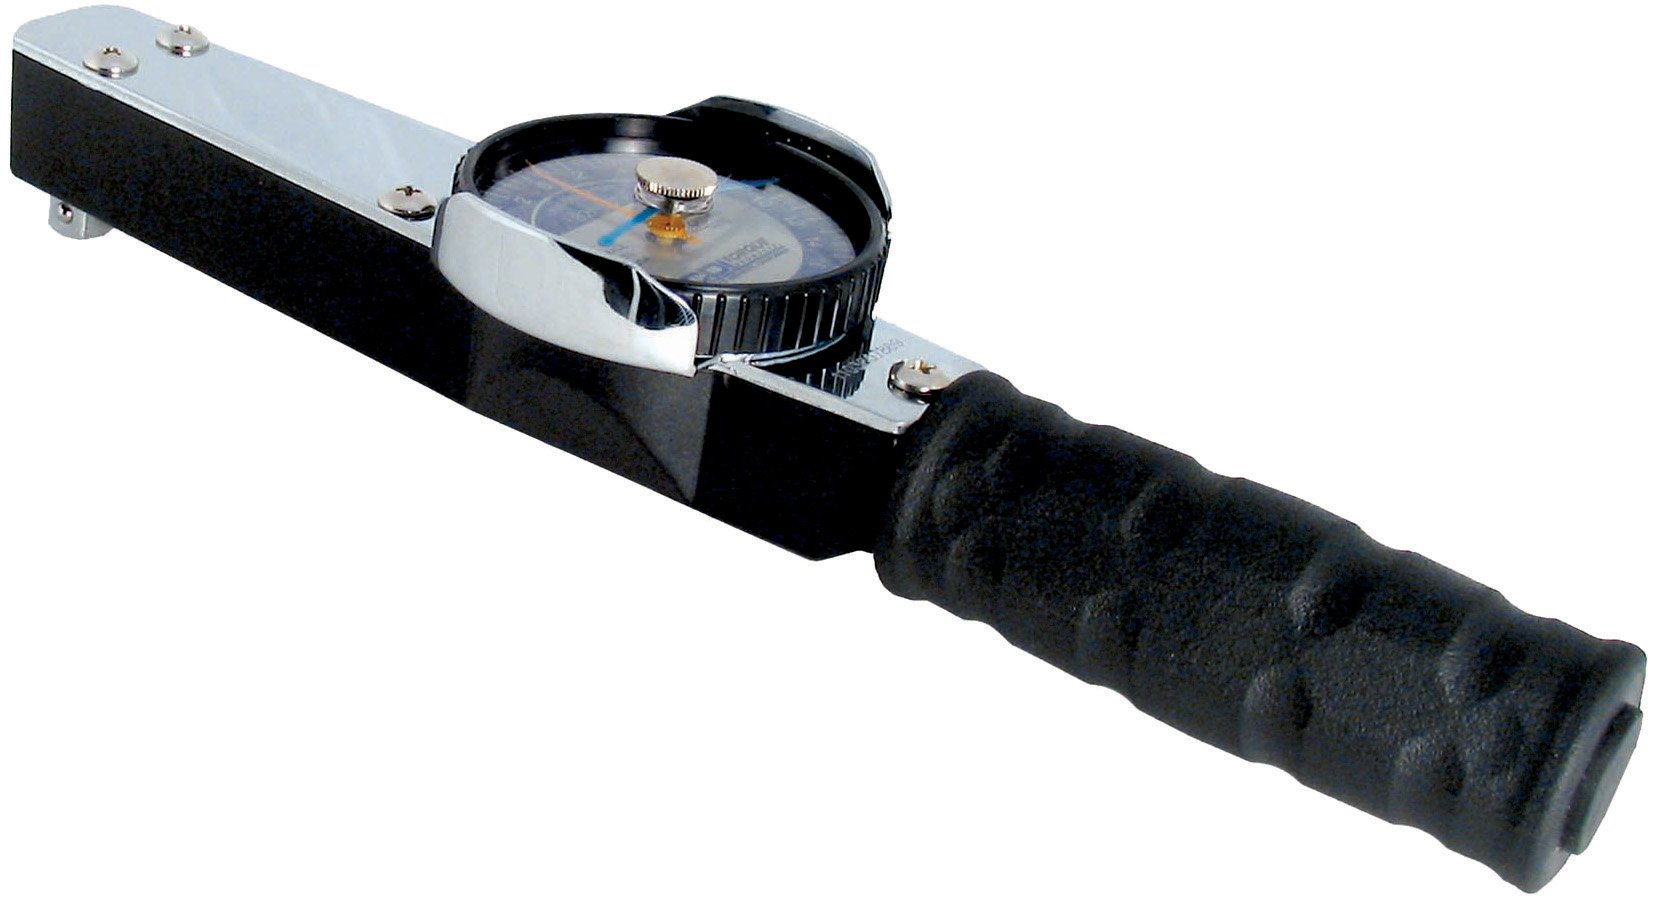 CDI 1502LDIN 3/8-Inch Drive Memory Needle Dual Scale Wrench, Torque Range 0 to 150-In.lbs